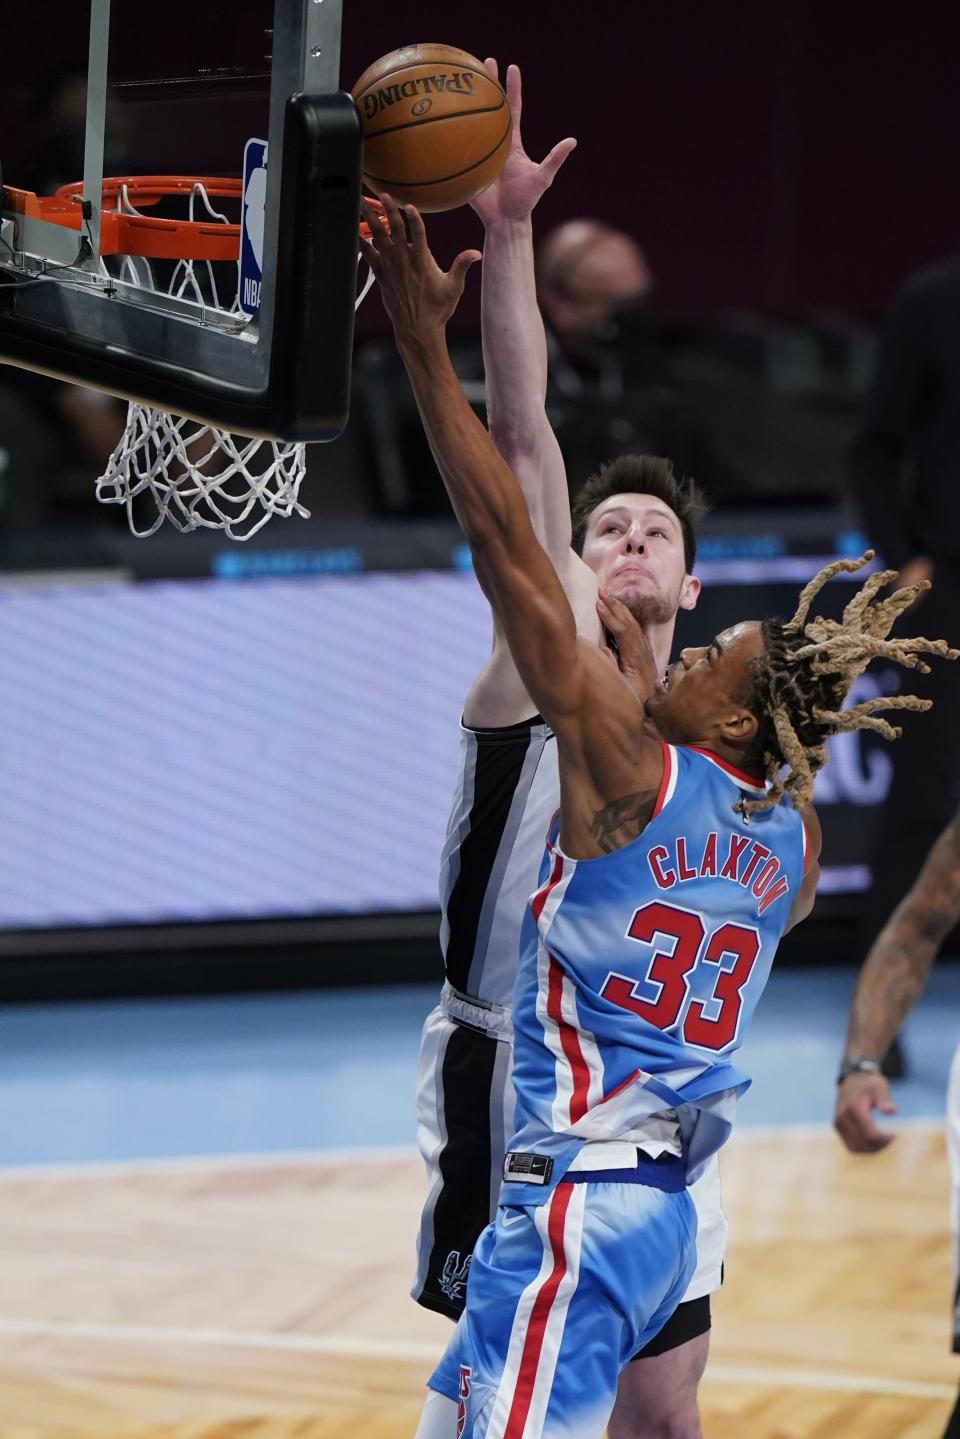 Brooklyn Nets' Nicolas Claxton (33) drives past San Antonio Spurs' Drew Eubanks (14) during the second half of an NBA basketball game Wednesday, May 12, 2021, in New York. (AP Photo/Frank Franklin II)